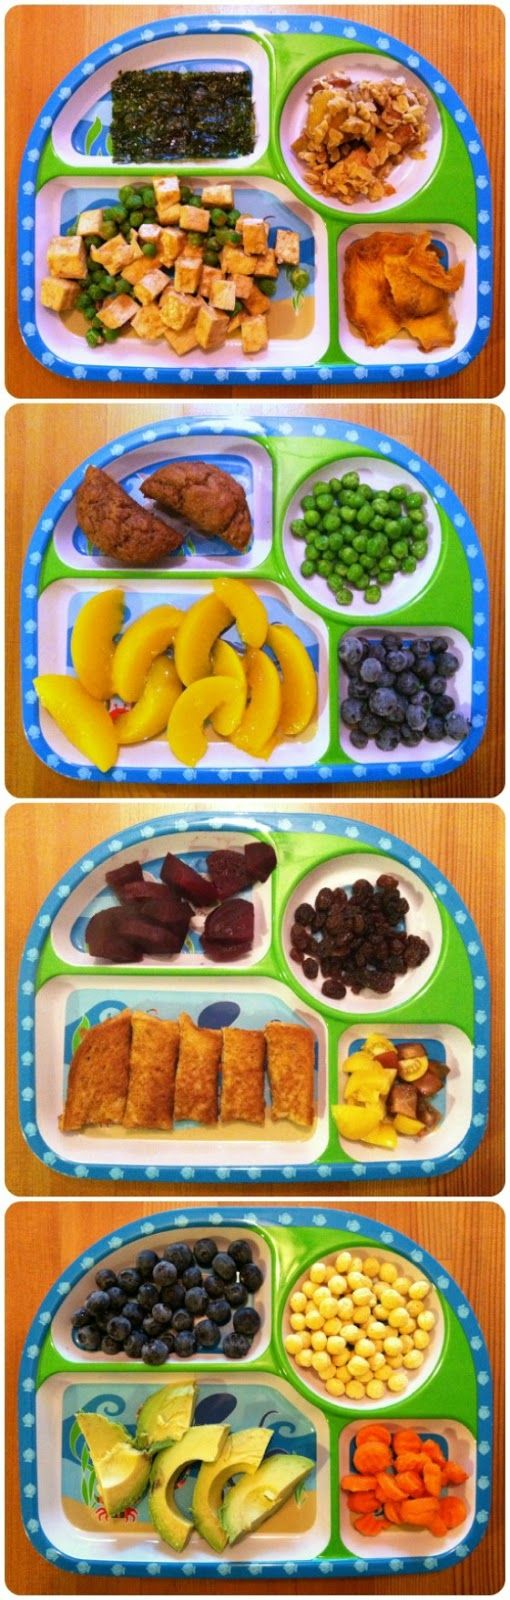 "Vegan Mother Hubbard: Toddler Meals, not that we're vegan...but the plates appear to follow the ""feed your kid a rainbow"" rule"